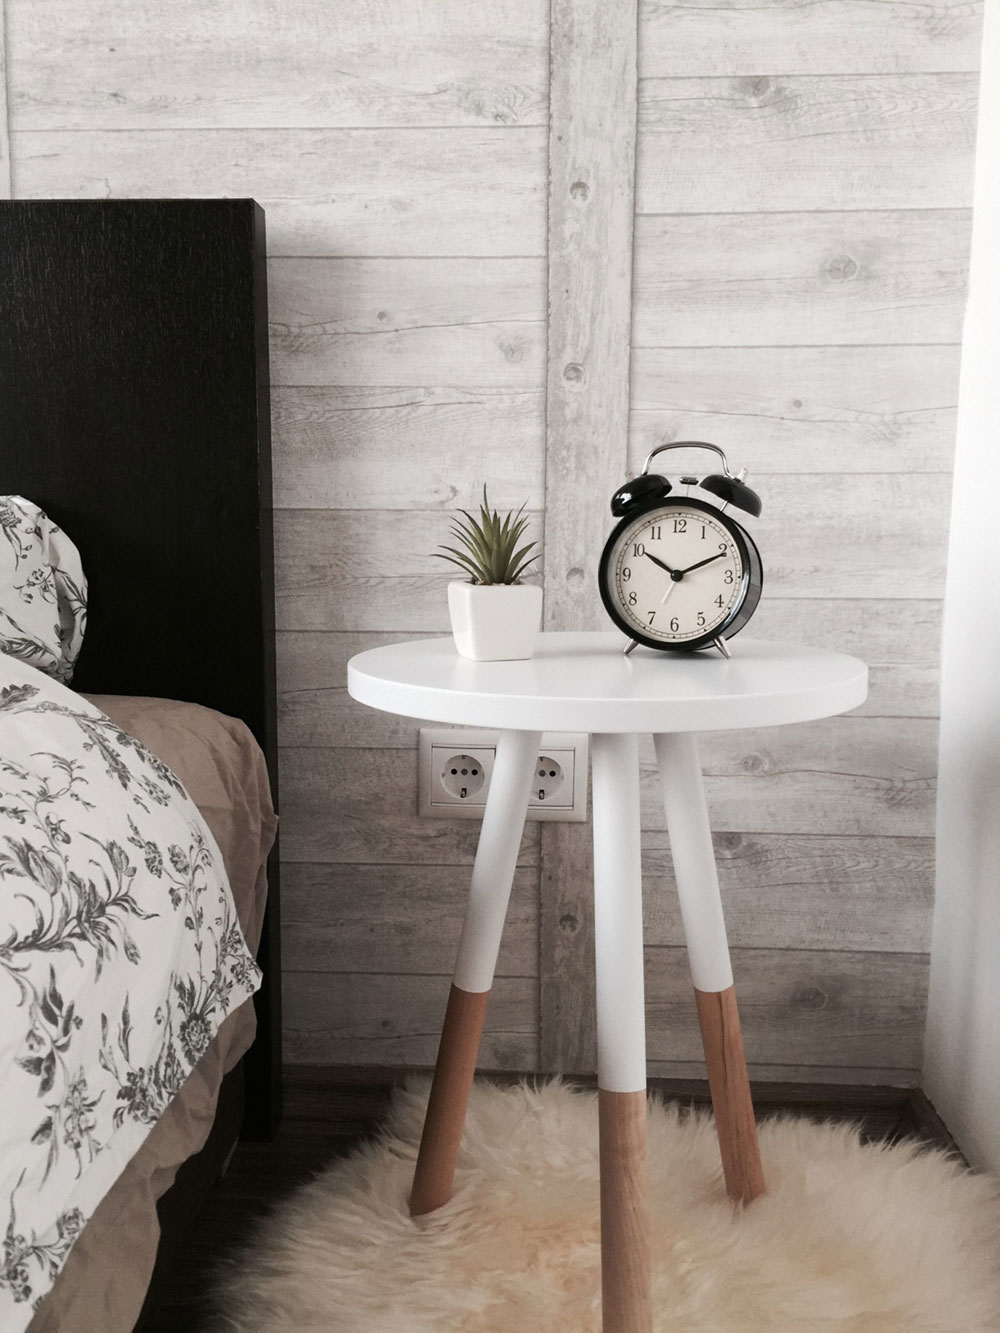 An old fashioned alarm clock on a bedside table beside a potted succulent